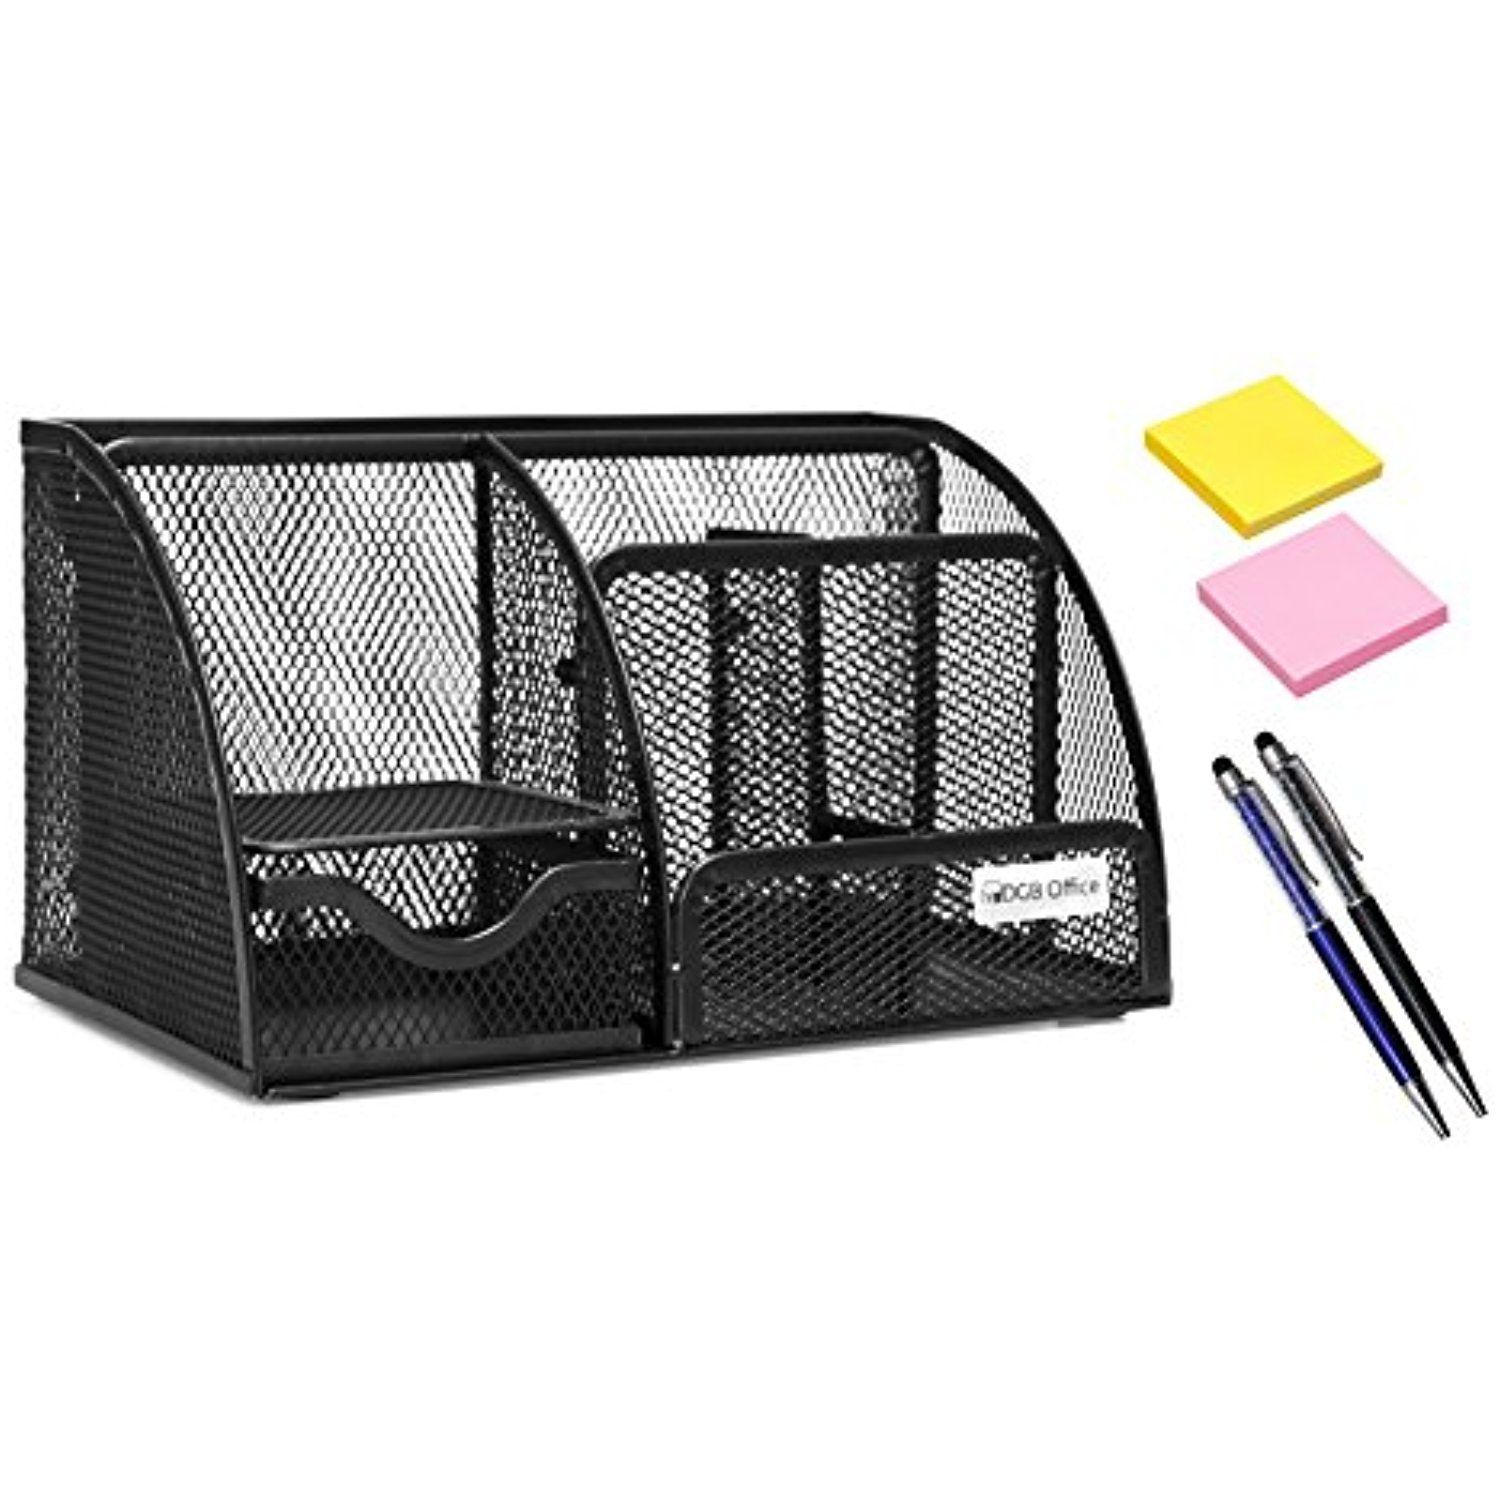 Office Desk Supplies Organizer - Caddy Mesh 6 Compartment with ...